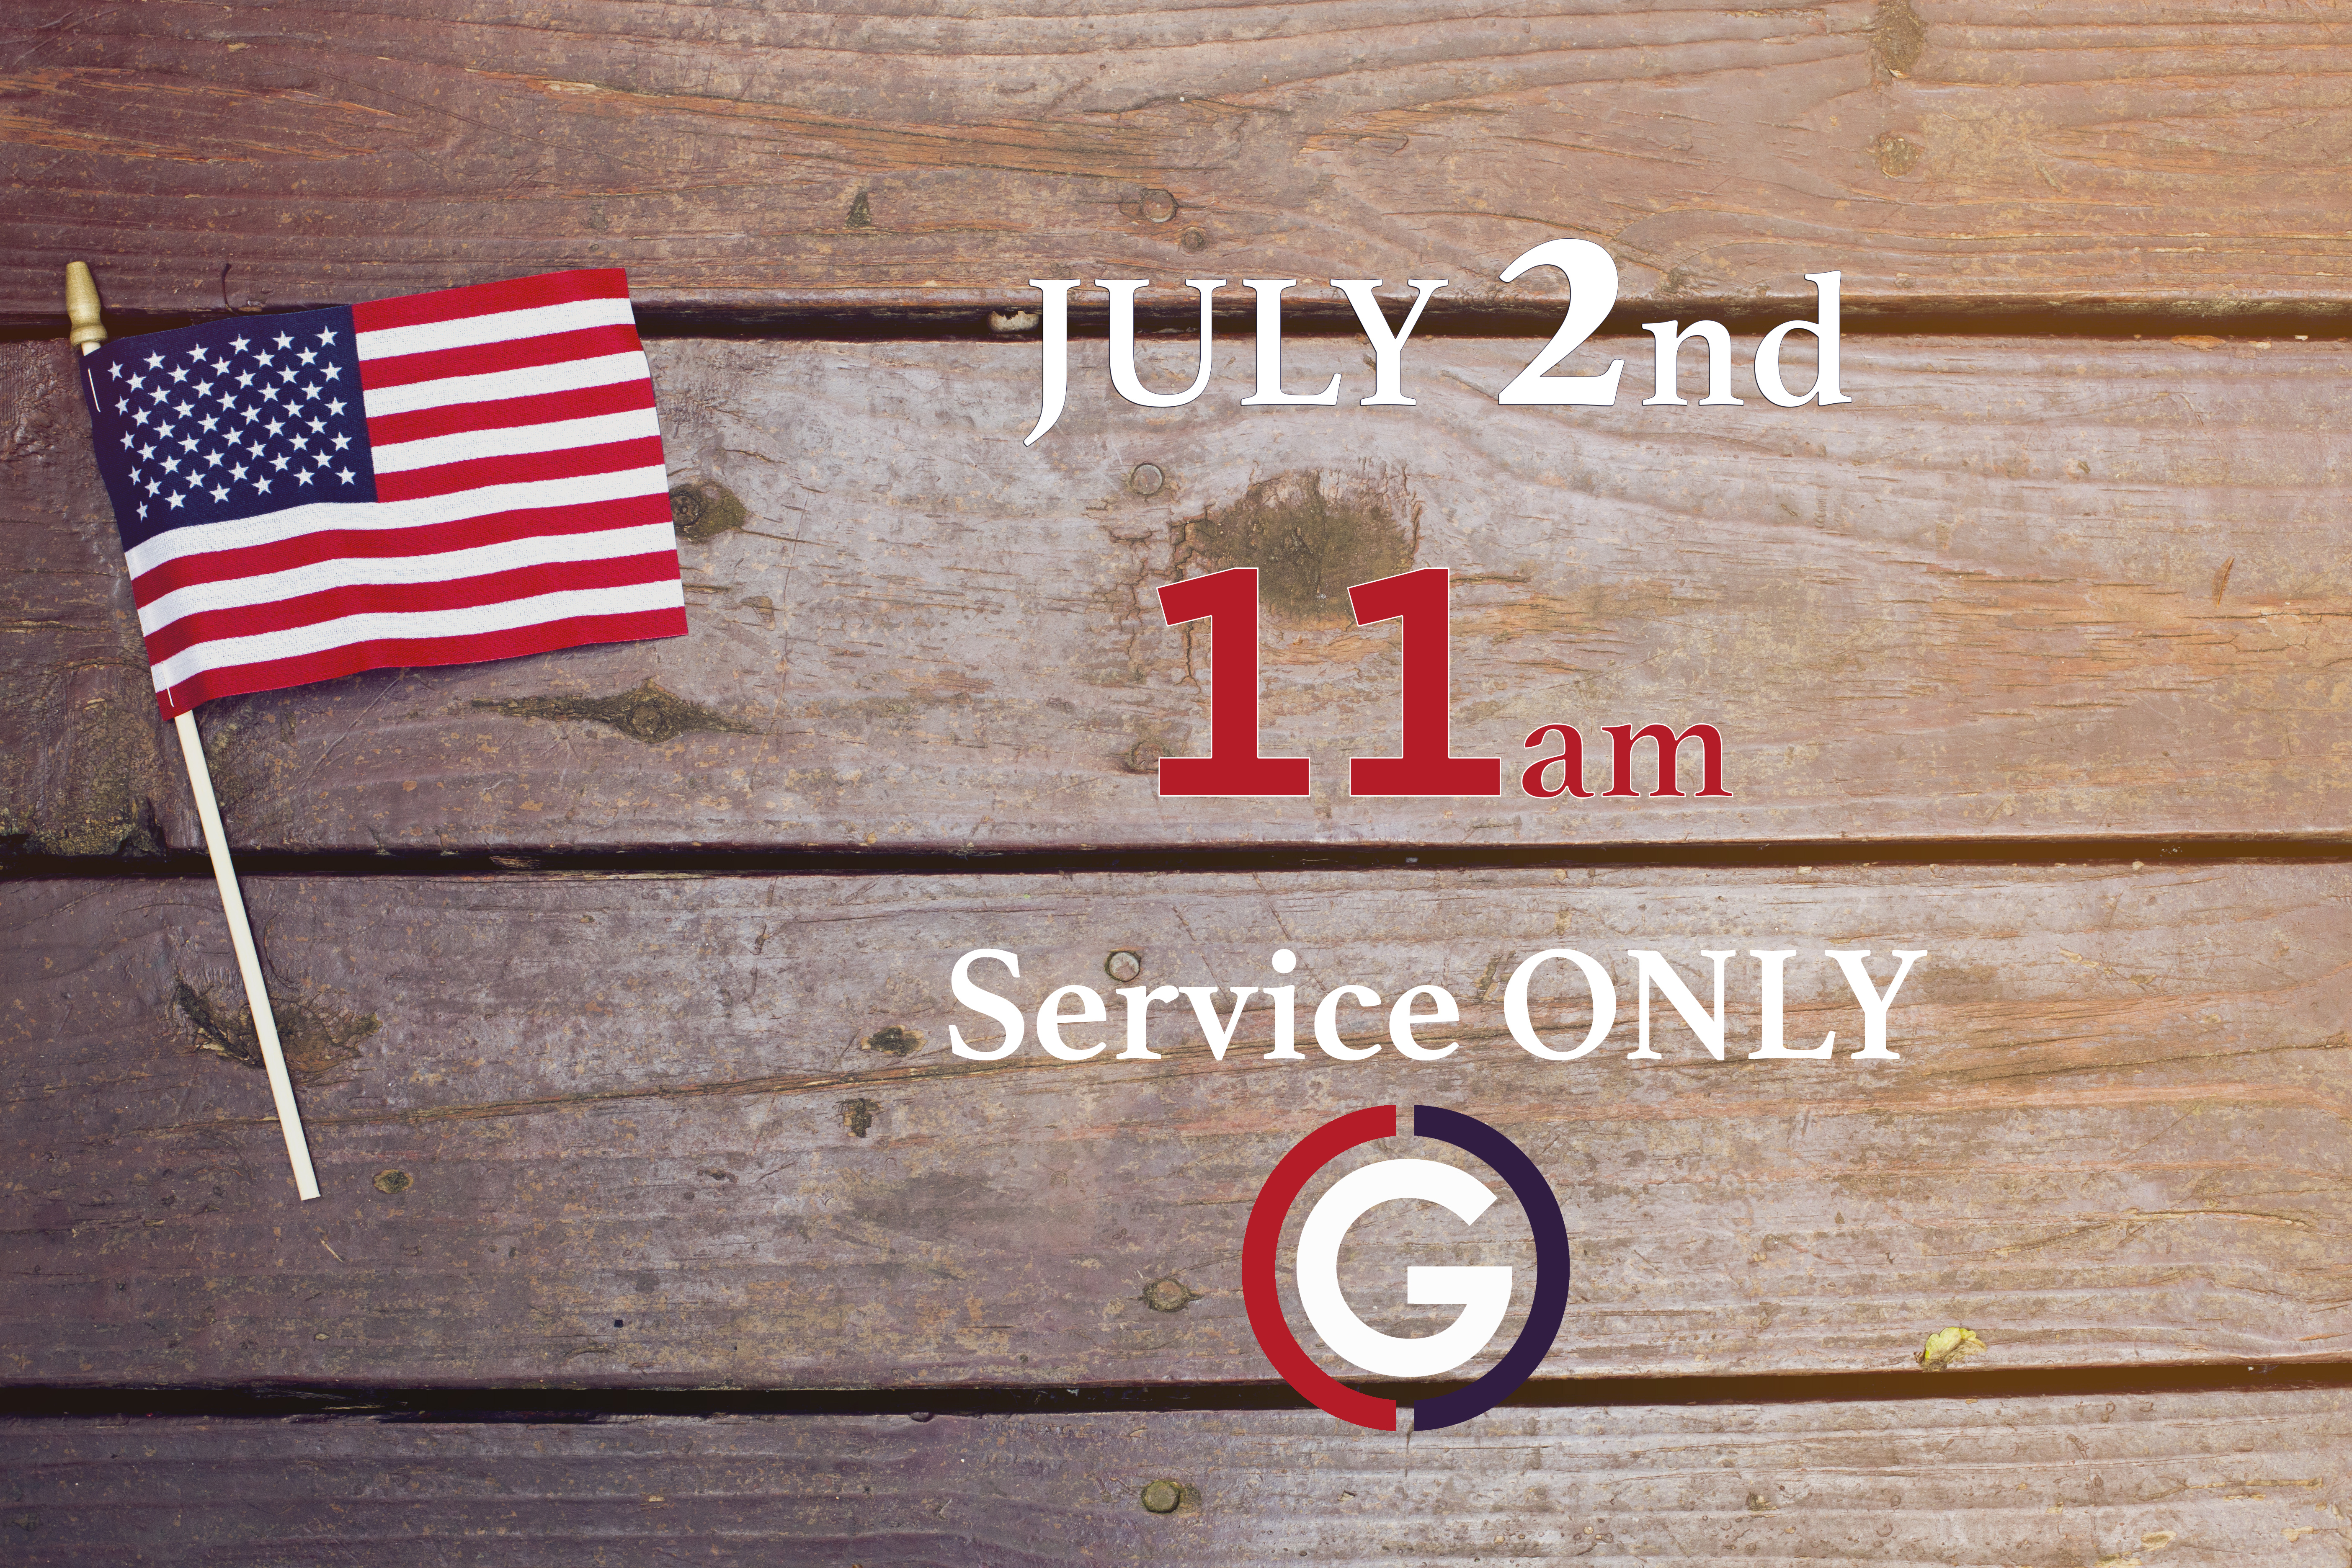 July 2nd: 11am Service ONLY